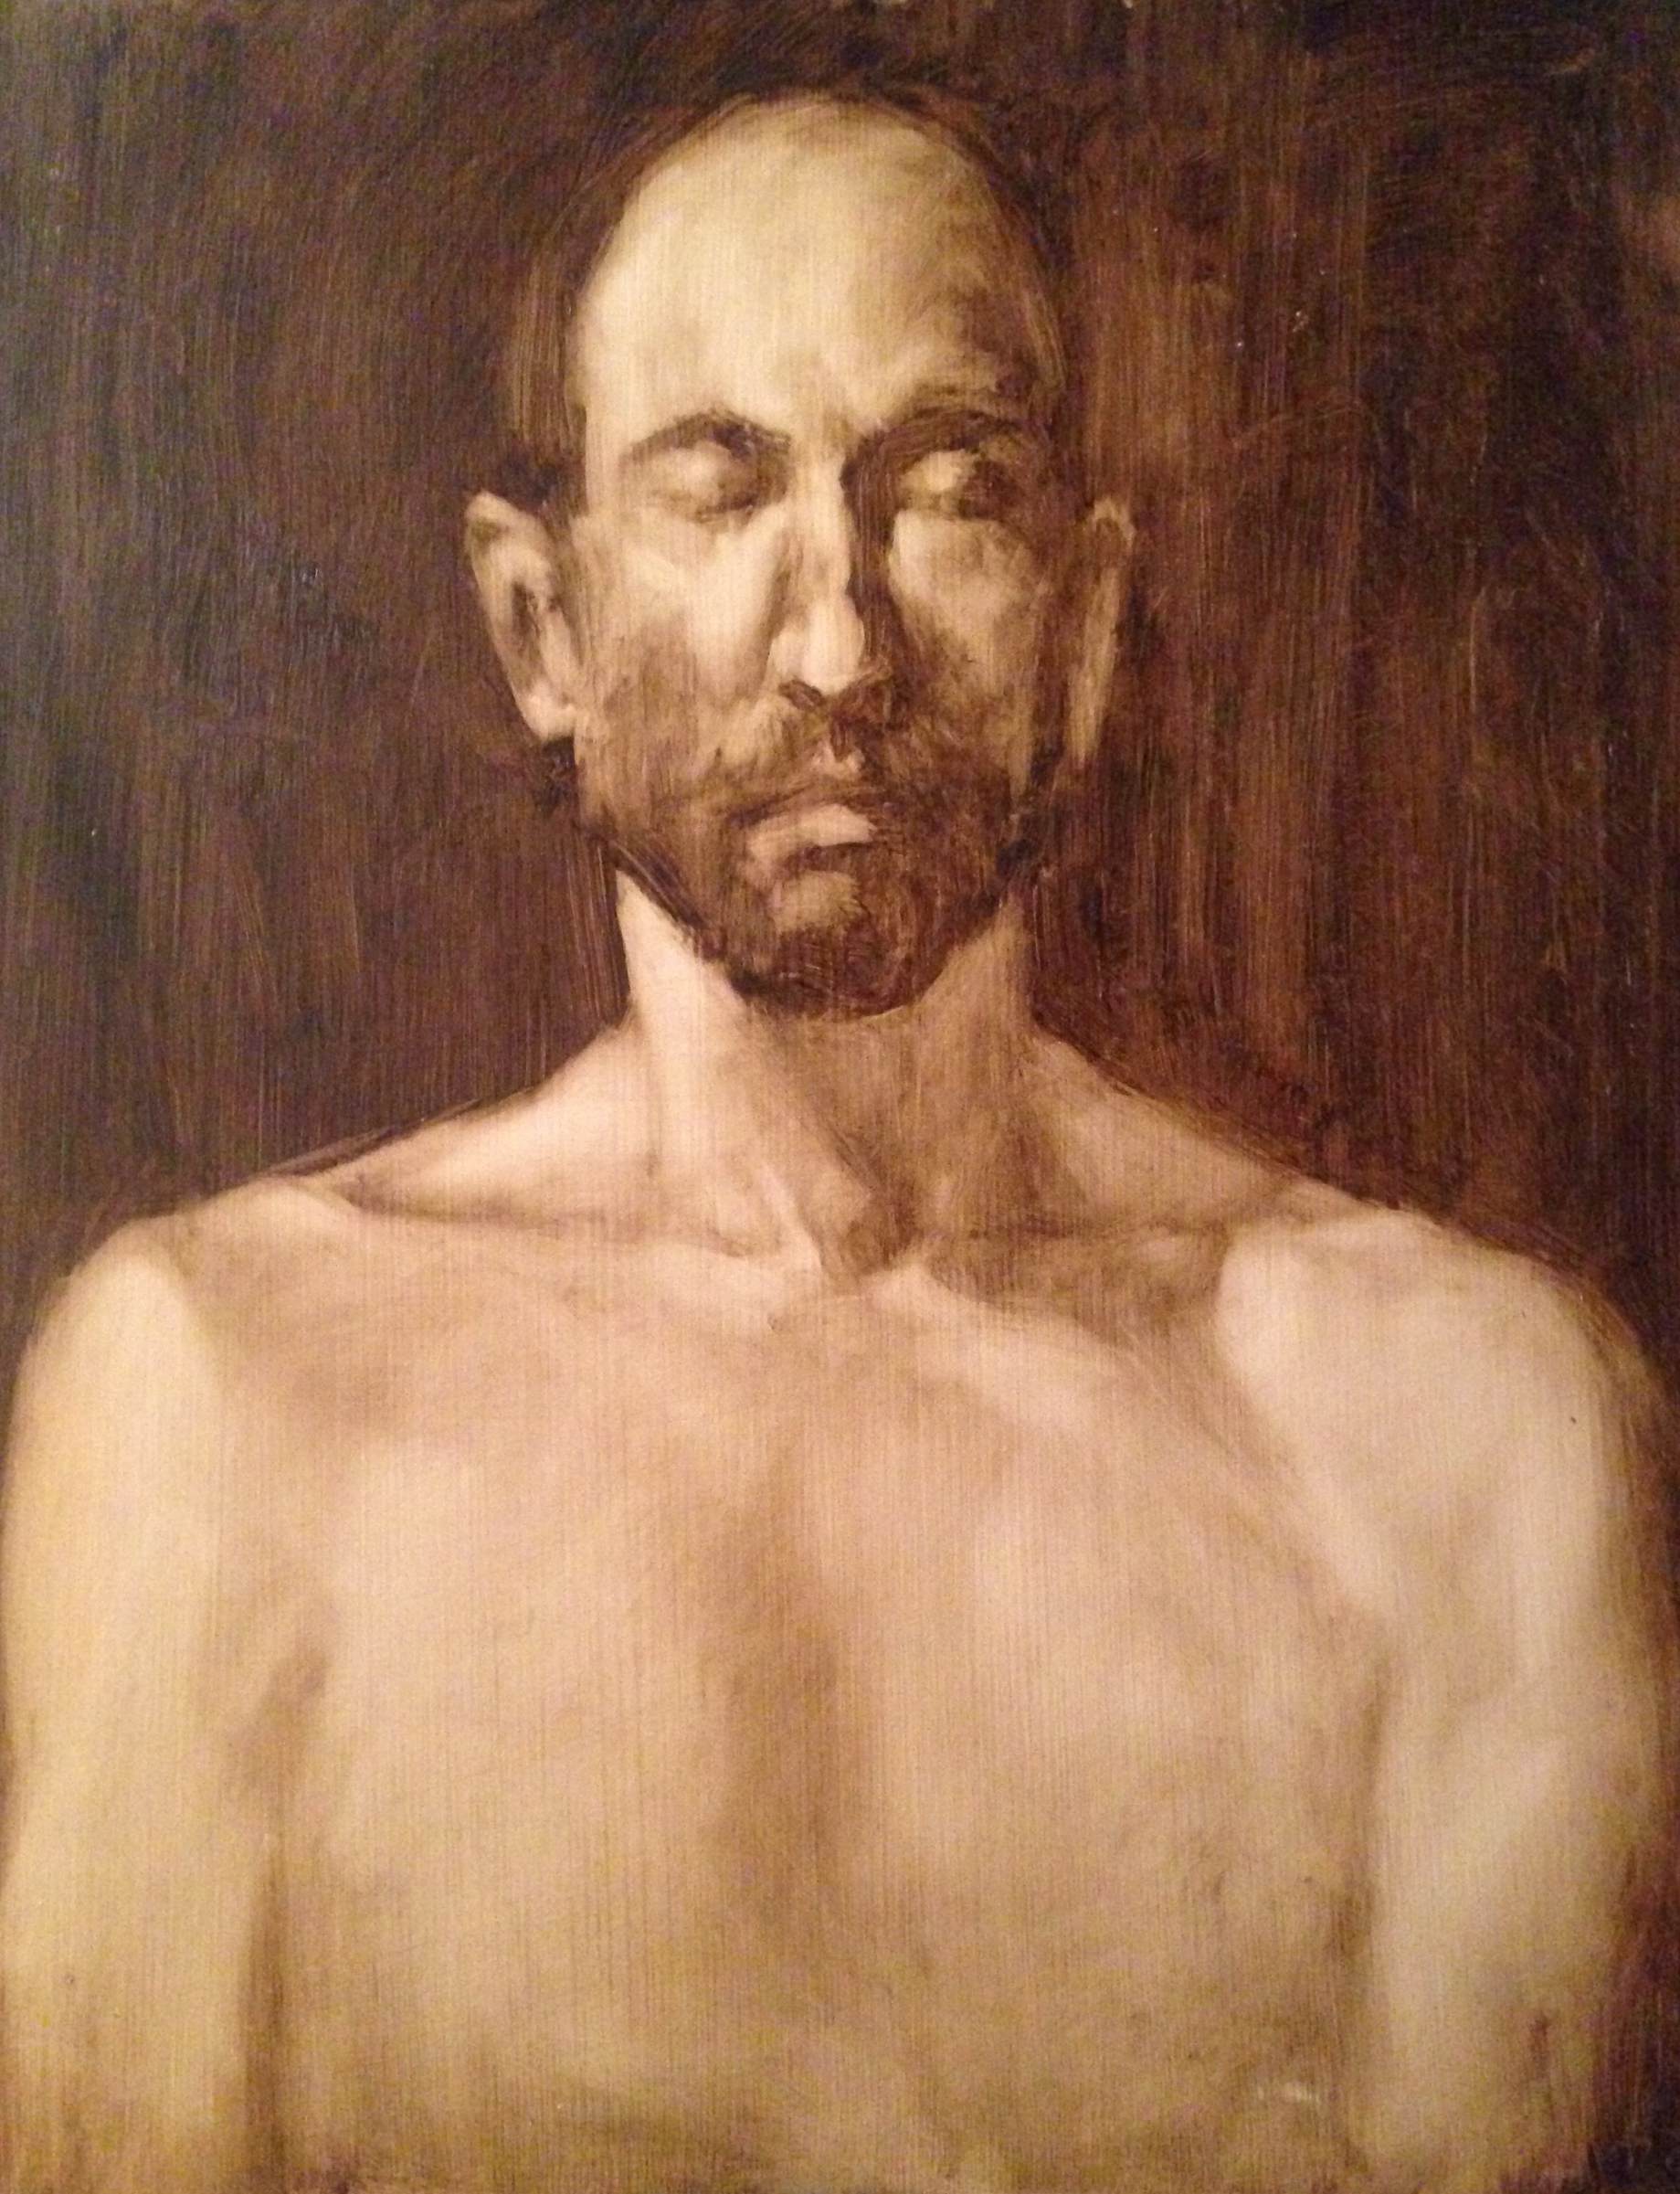 Oil on gessoed paper 10.5 x 15 inches 2015